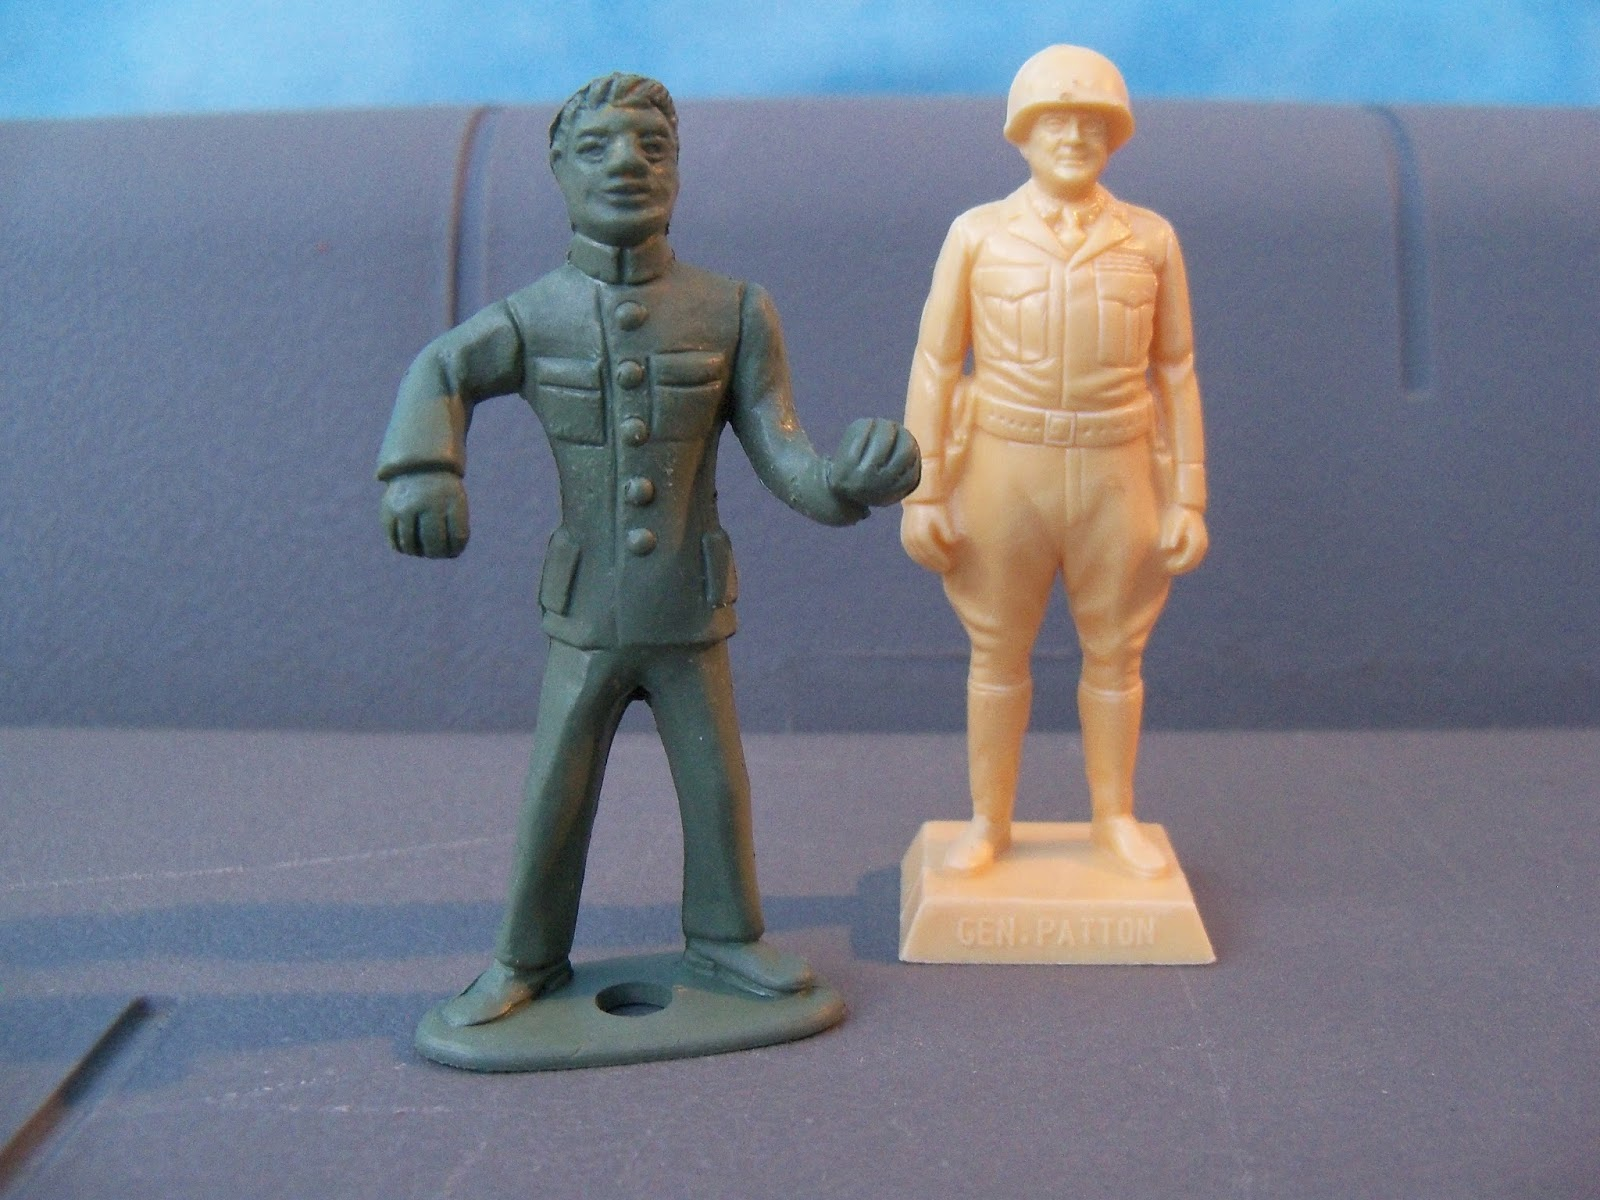 Golden slots toy soldiers